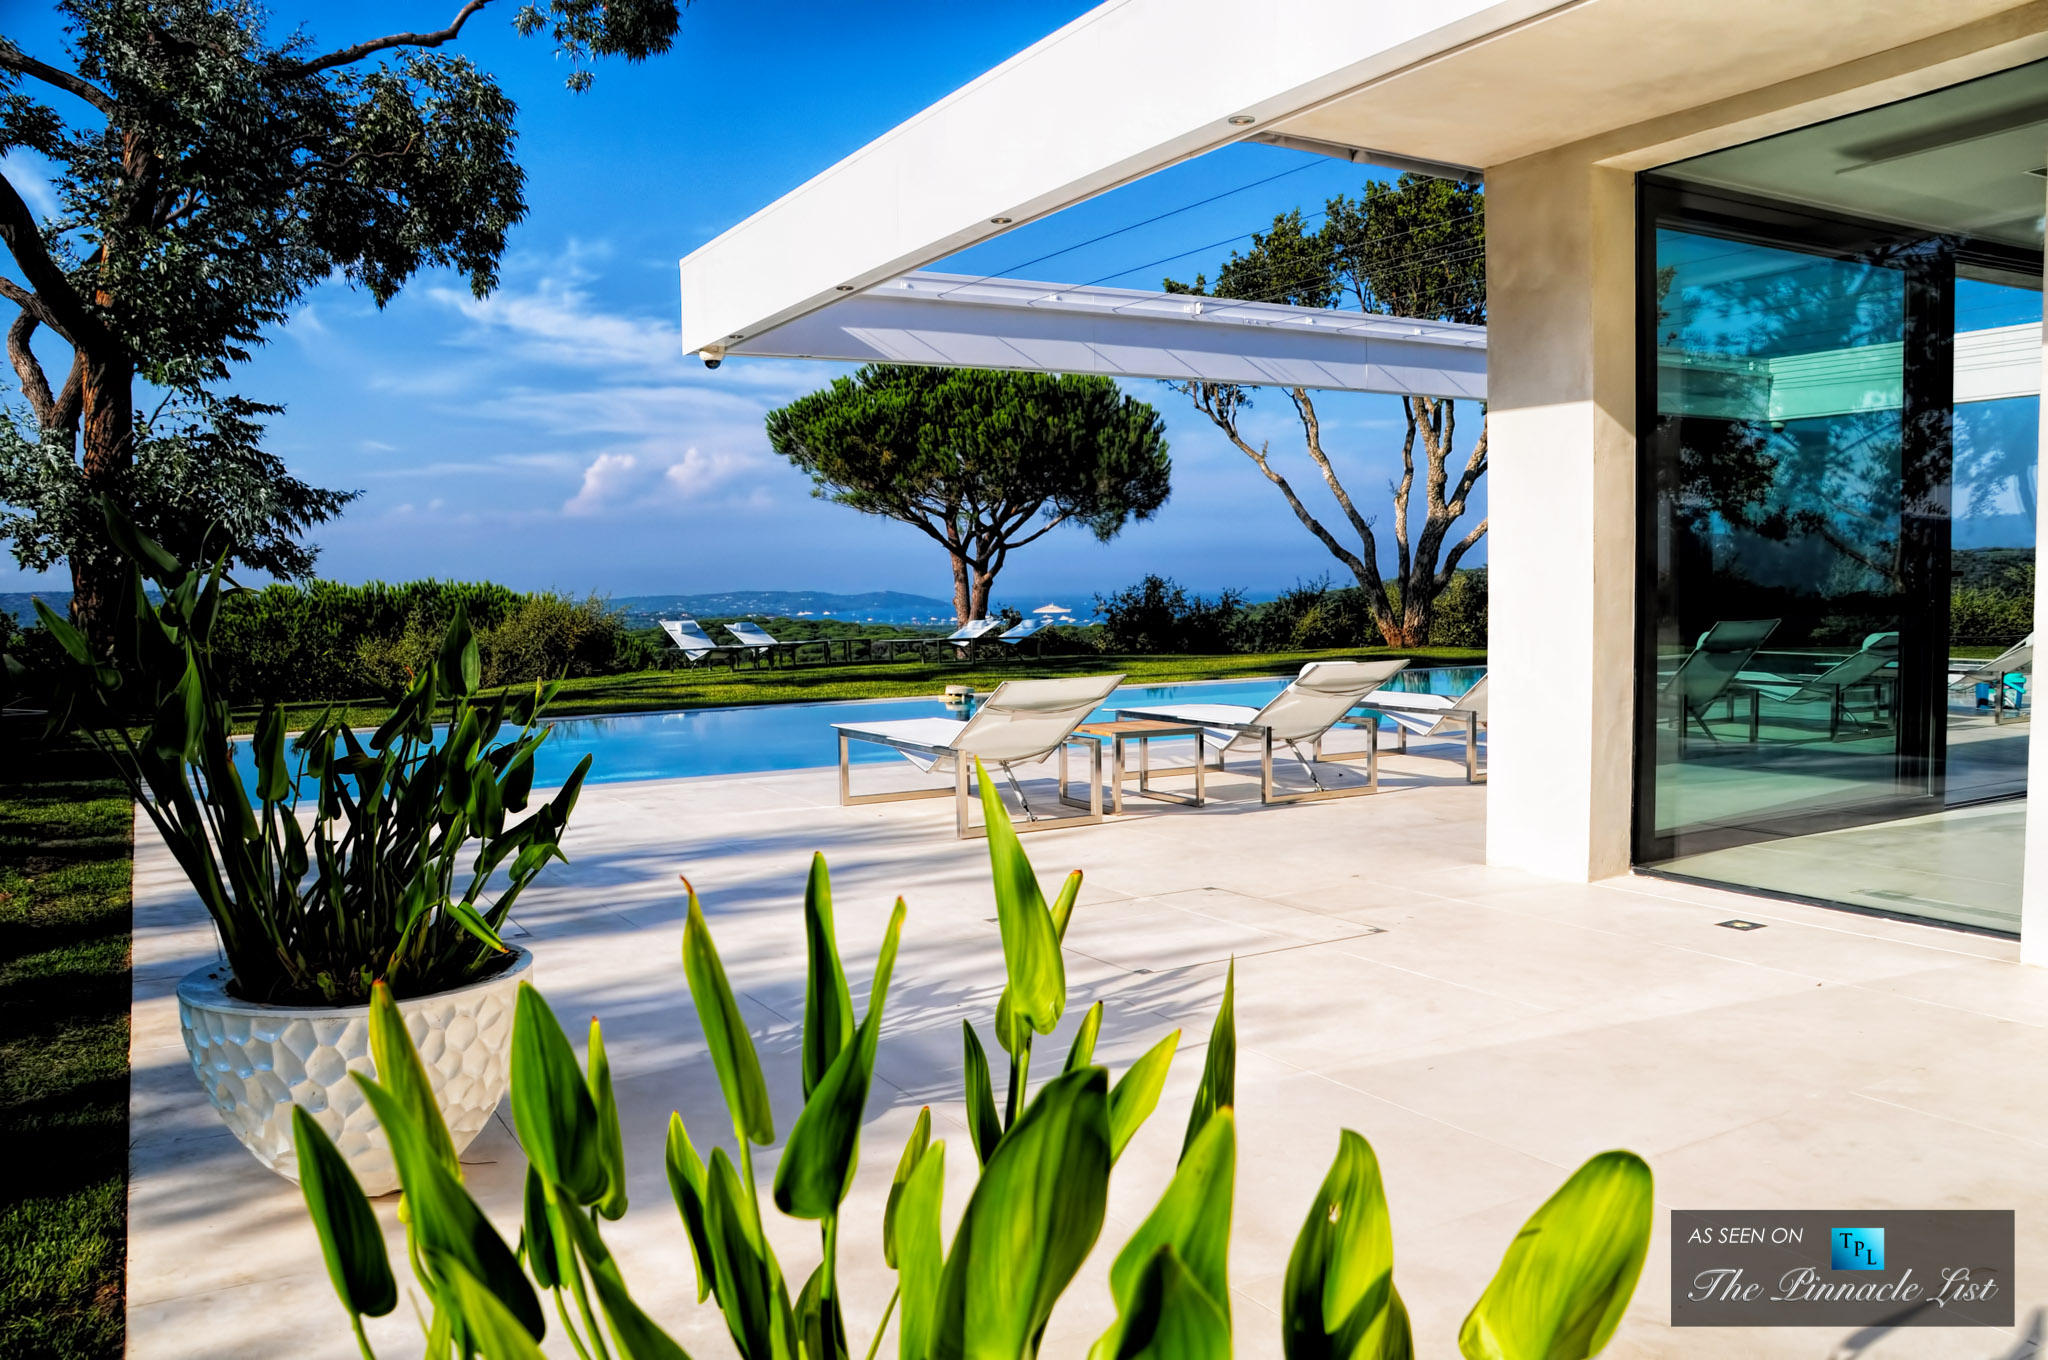 Villa Paradise in St. Tropez – Rent a Family Villa on the French Riviera like No Other